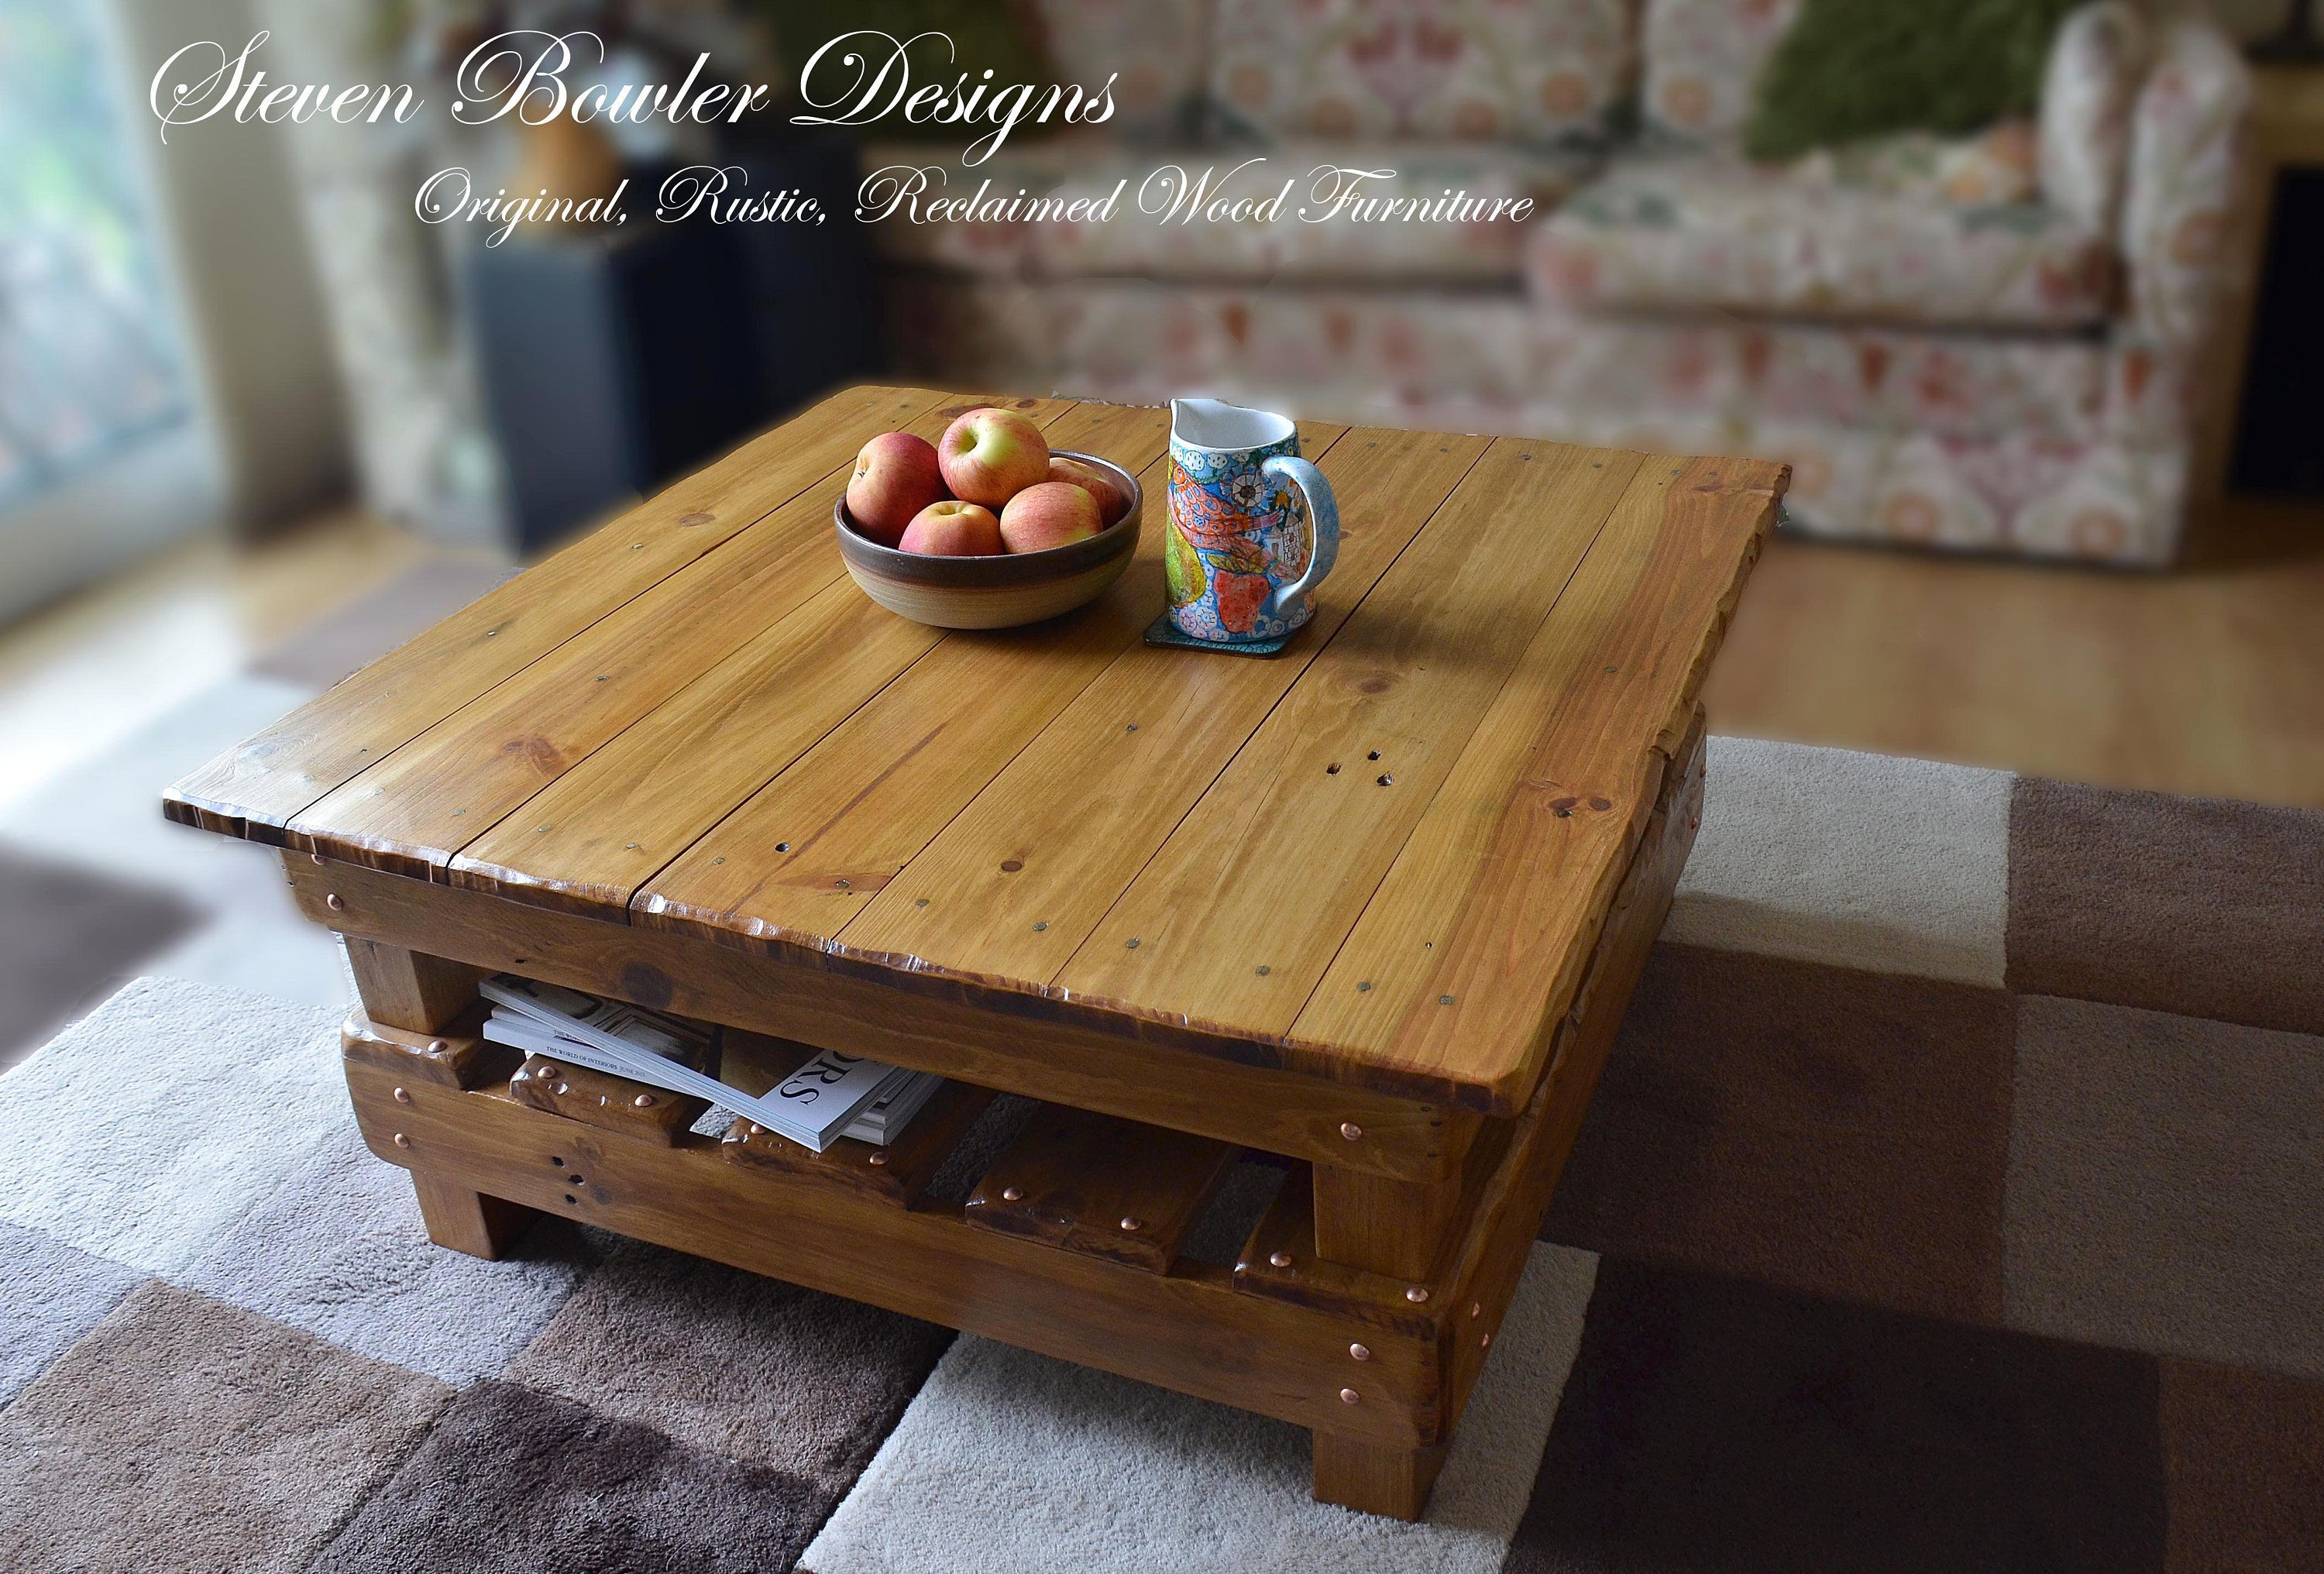 Light Oak Country Cottage Reclaimed Wood Coffee Table With Undershelf Storage 80 Cm X 80 Cm C Reclaimed Wood Coffee Table Coffee Table Wood Coffee Table Square [ 2032 x 3000 Pixel ]